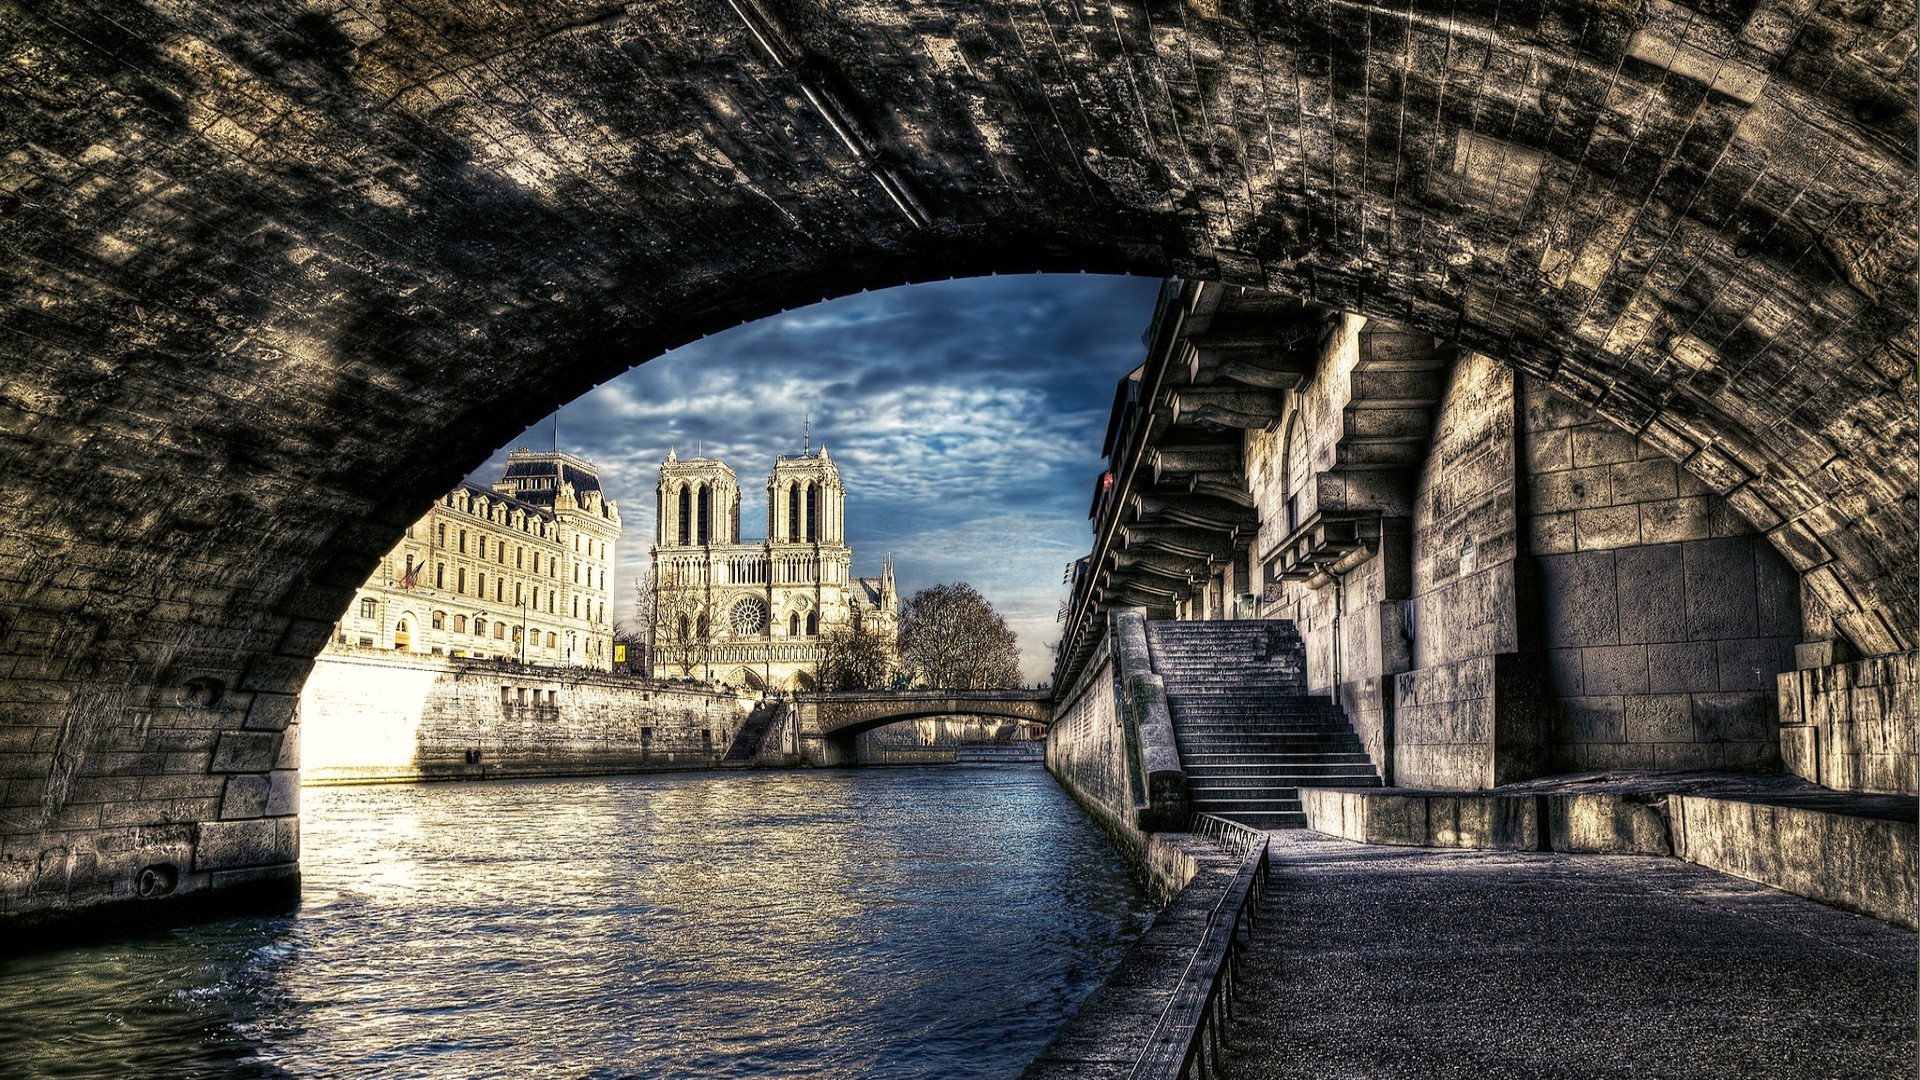 35 hd paris backgrounds the city of lights and romance for High quality wallpapers